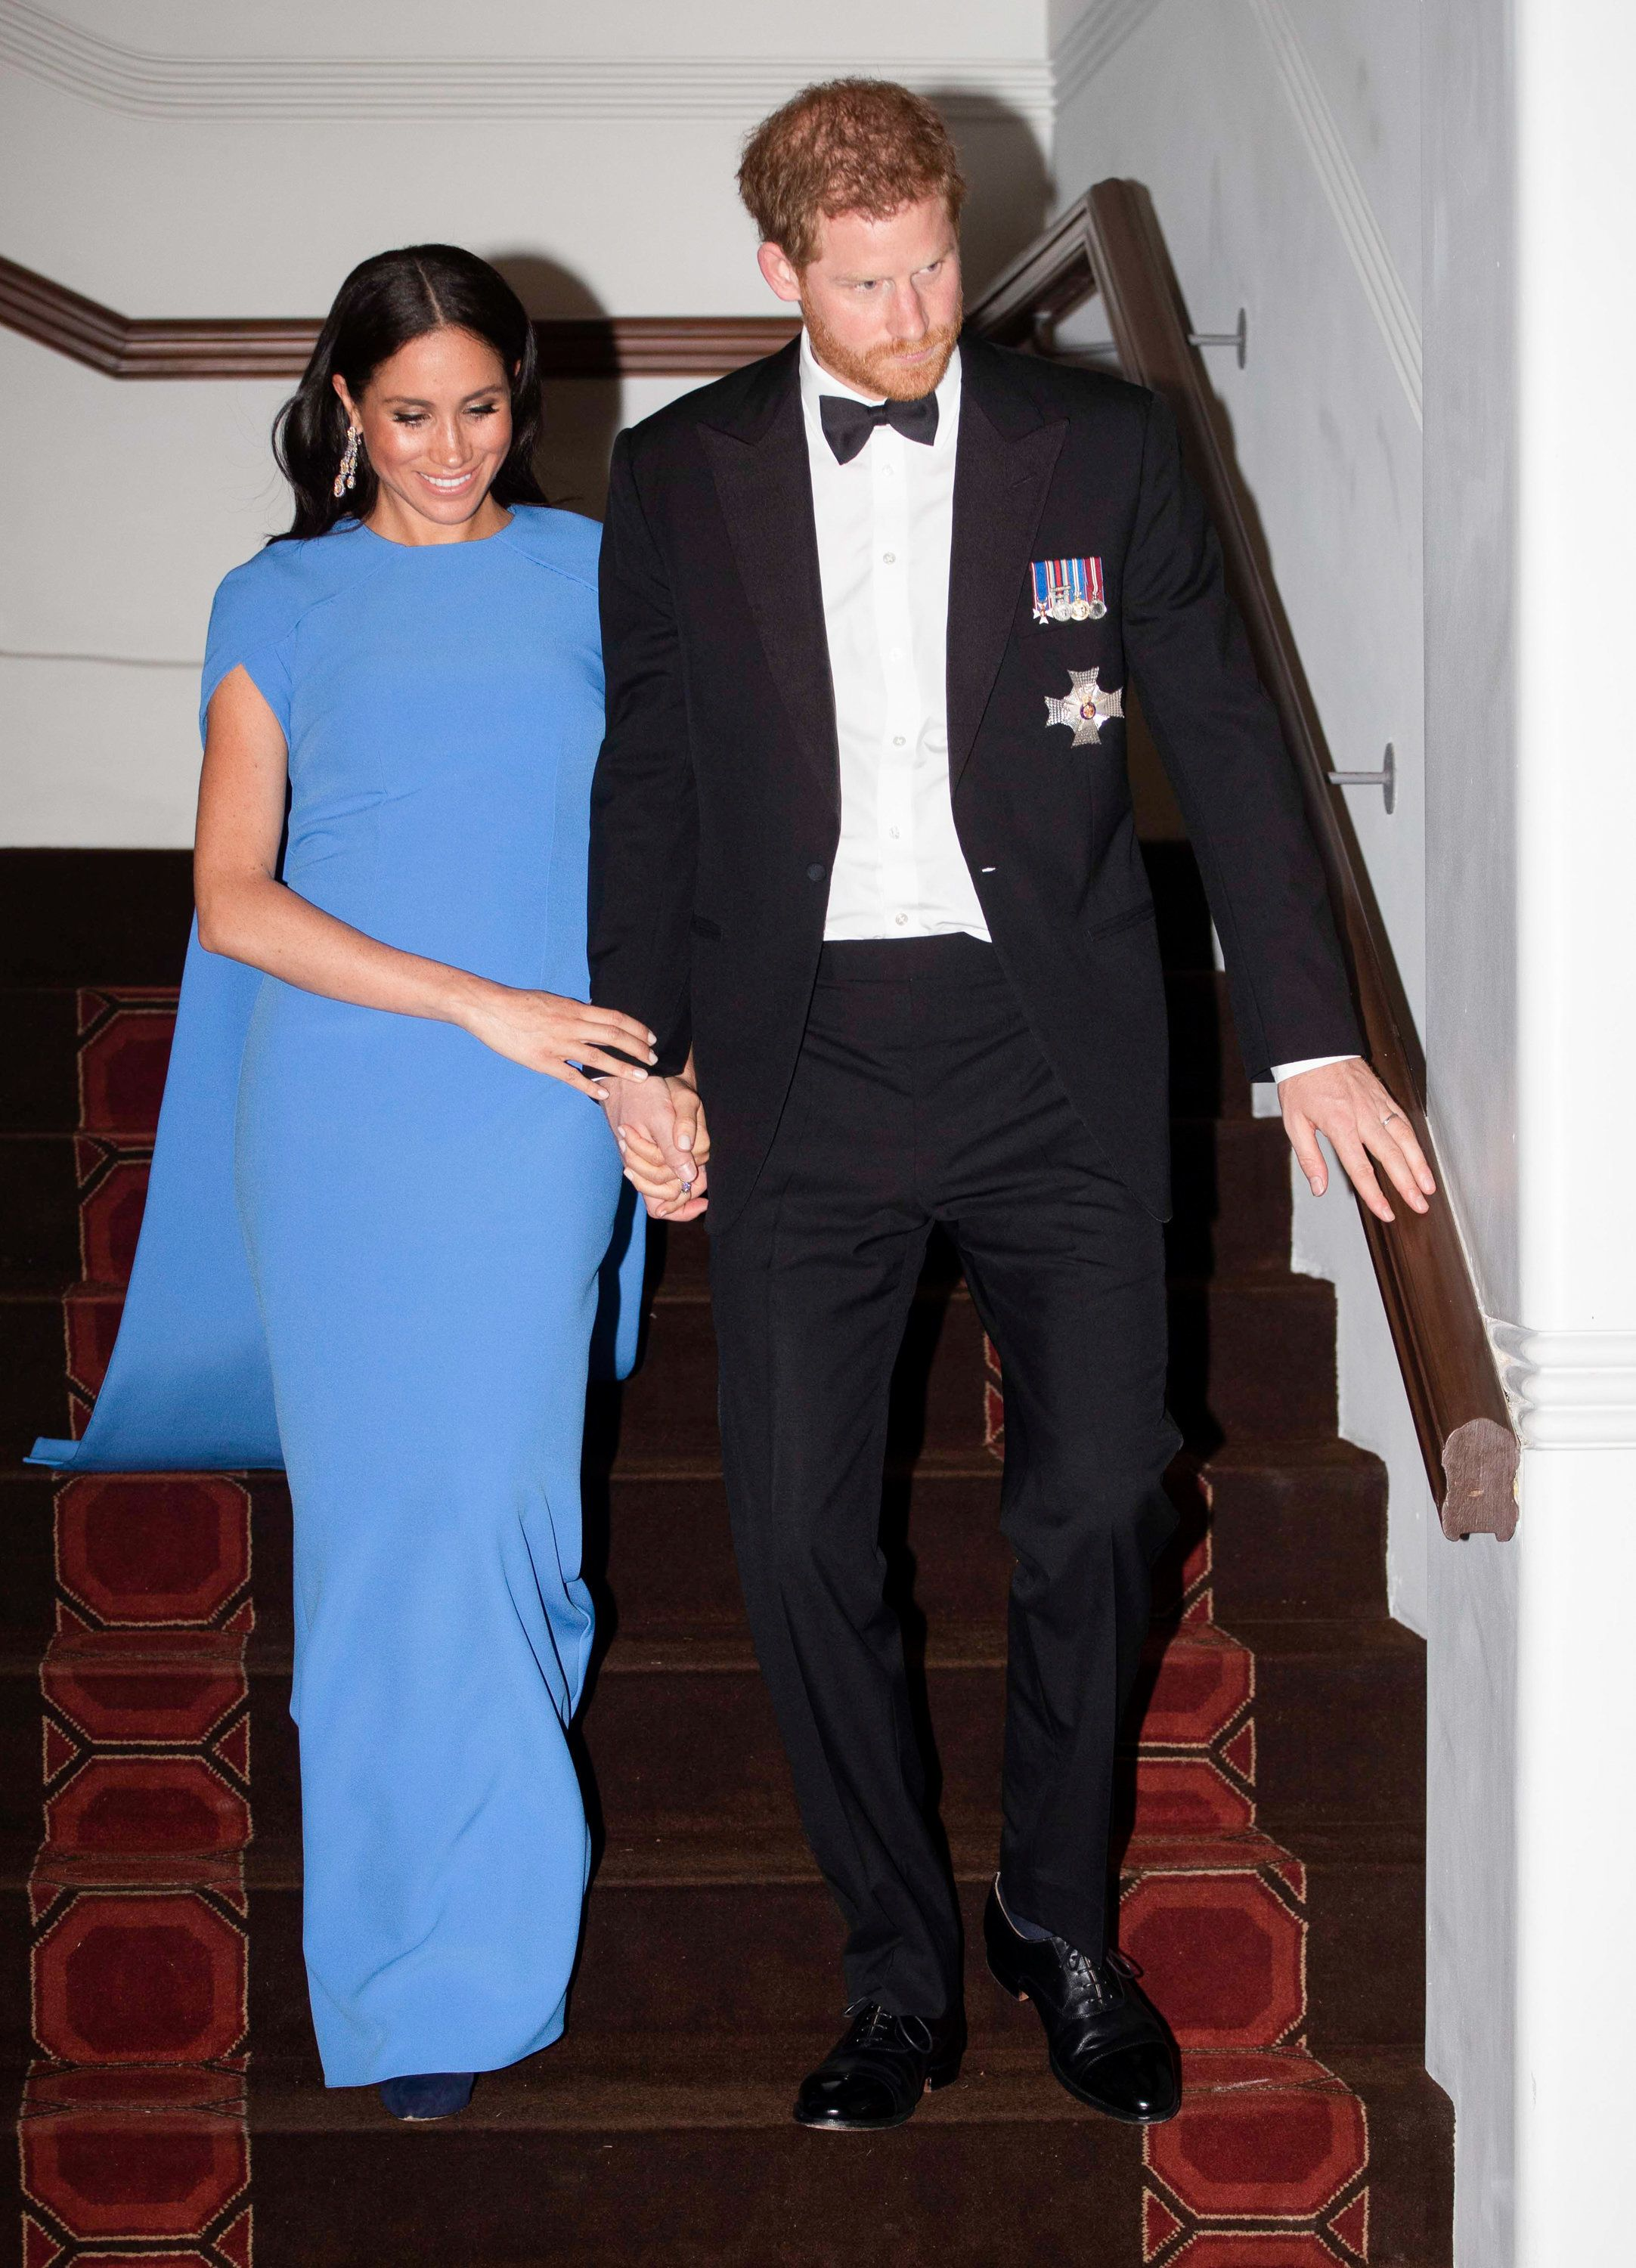 Prince Harry and Meghan, Duchess of Sussex attend a state dinner hosted by the president of the South Pacific nation Jioji Ko